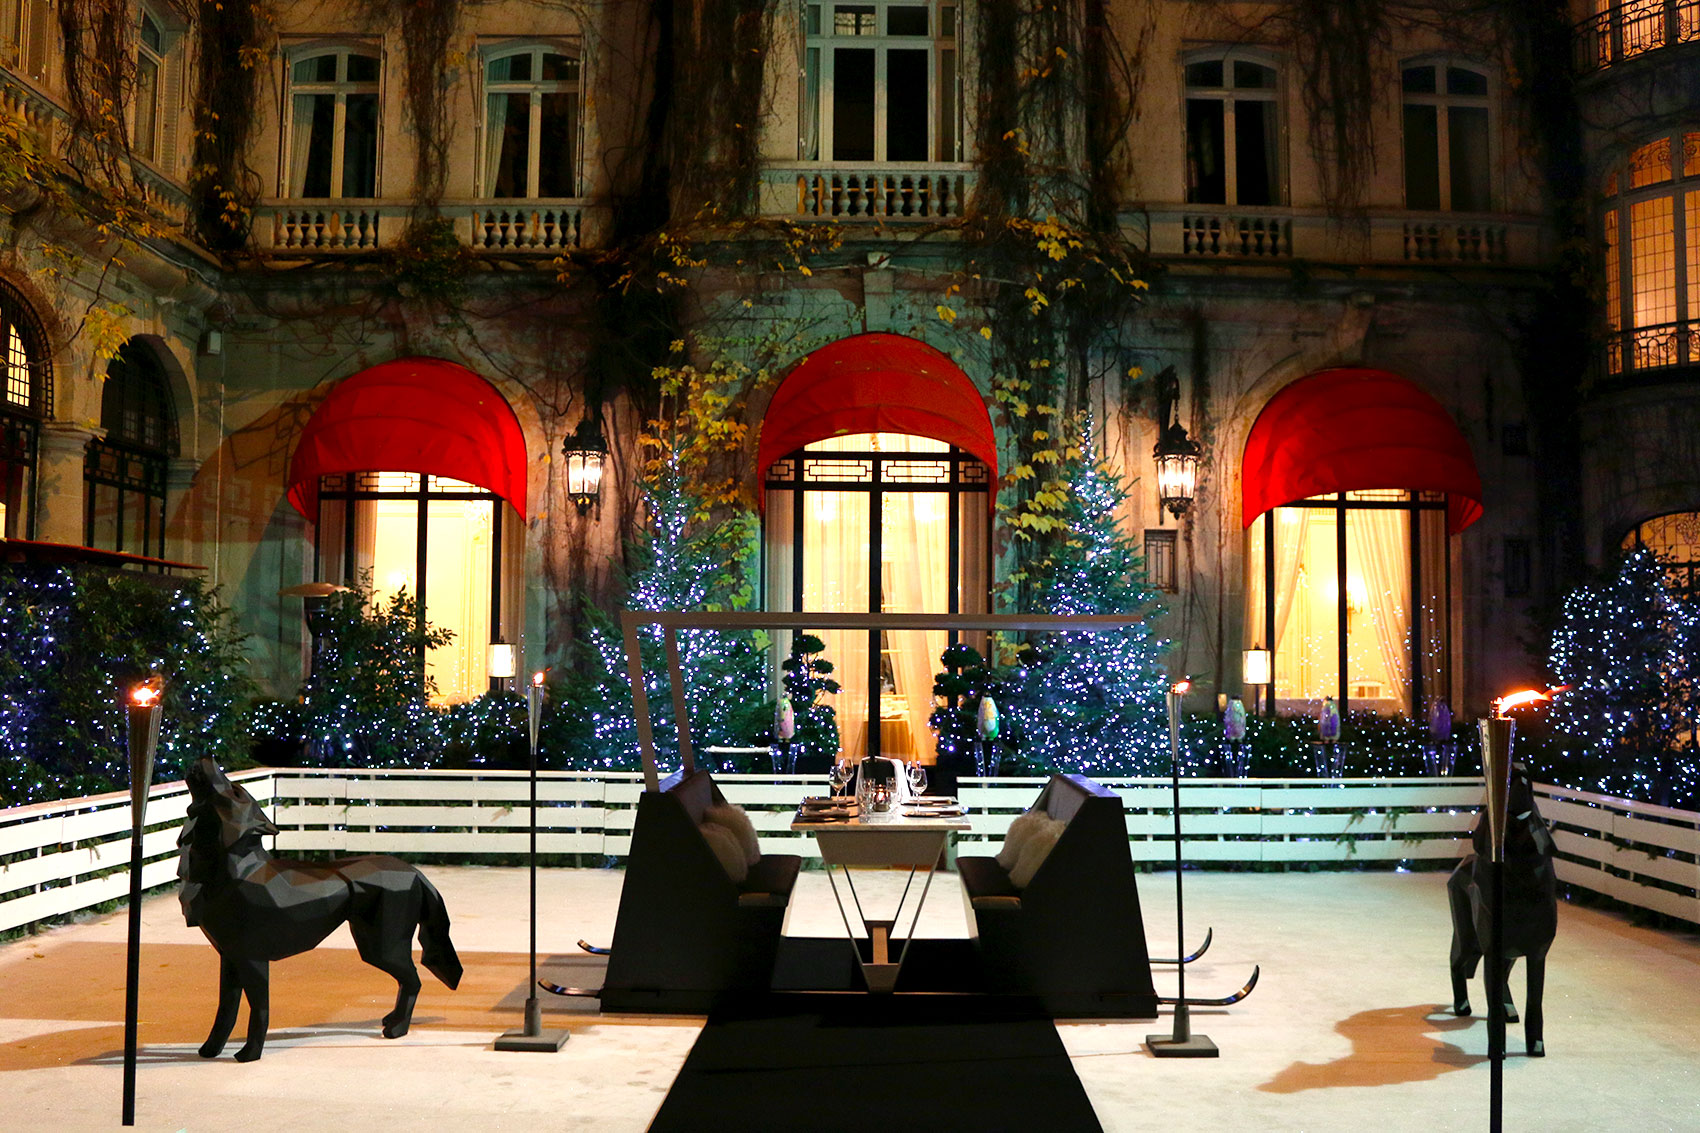 La table tra neau du plaza ath n e eat life with style - La cour jardin plaza athenee ...